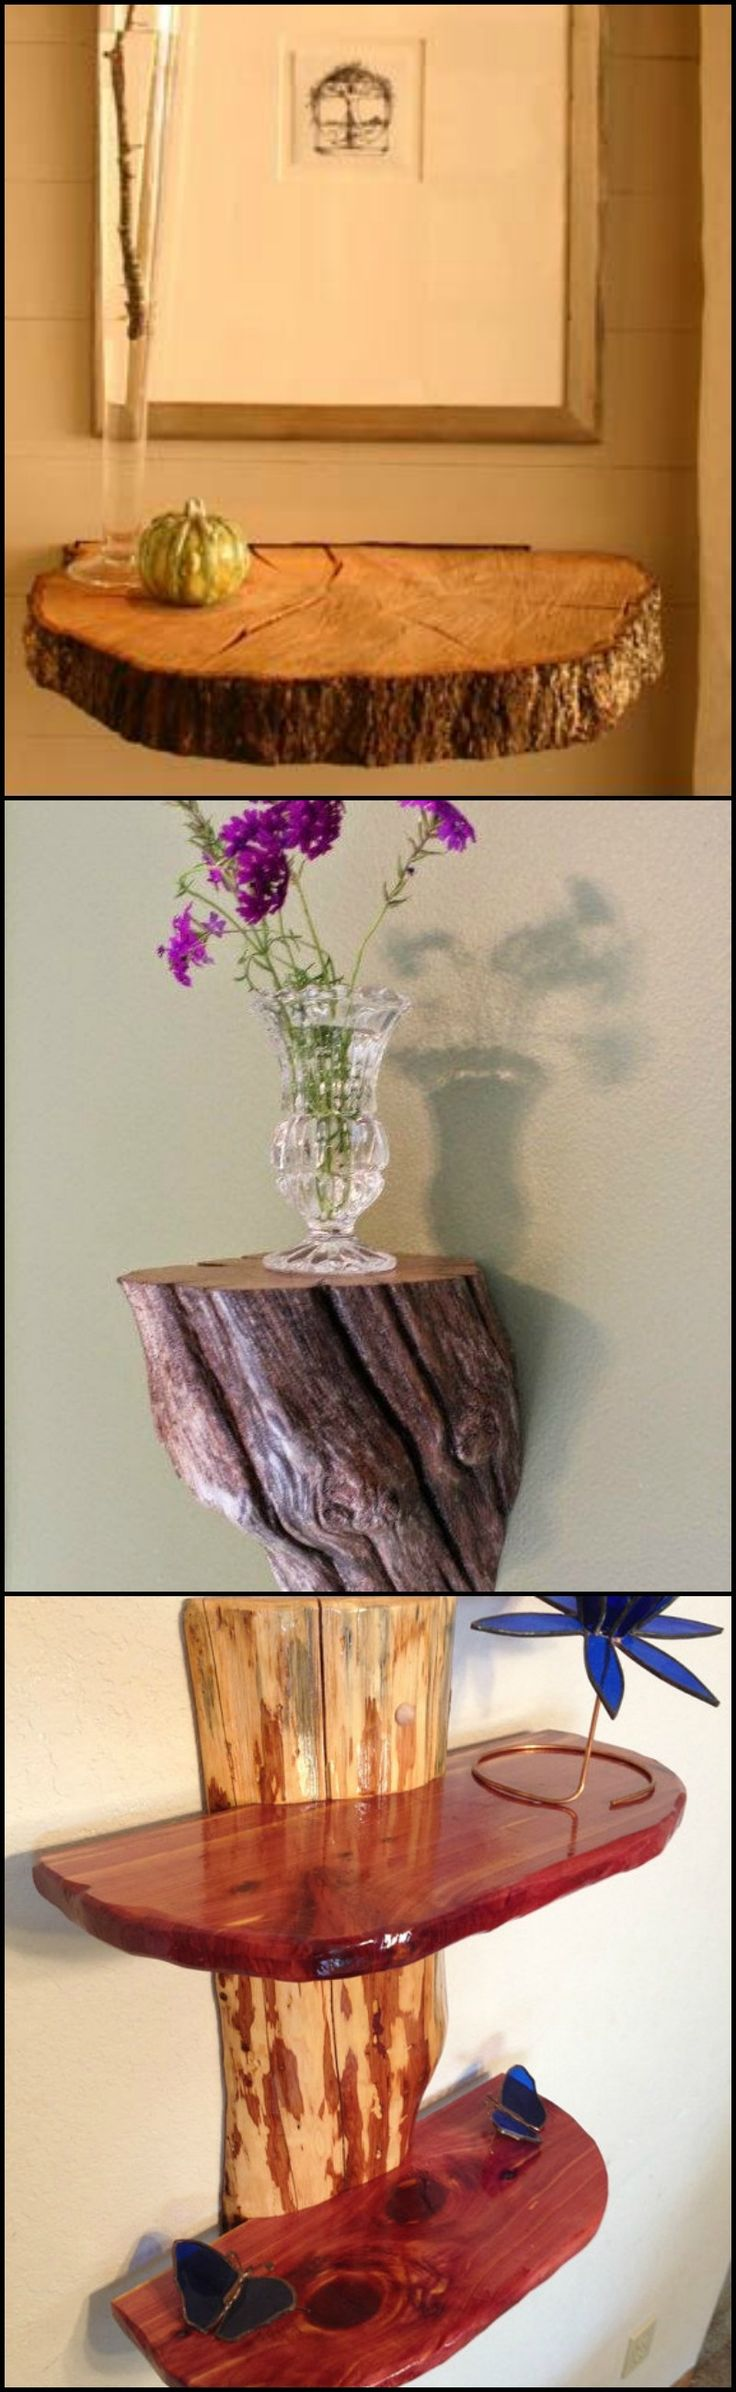 Do you want to make your house look a little more homey?  Adding elements that bring a little bit of nature definitely helps in making any space more pleasant to live in. This is one of the reasons why we put plants inside our homes. But if you feel that they are not enough, then a rustic log decor or furniture should help you achieve that country home feel.